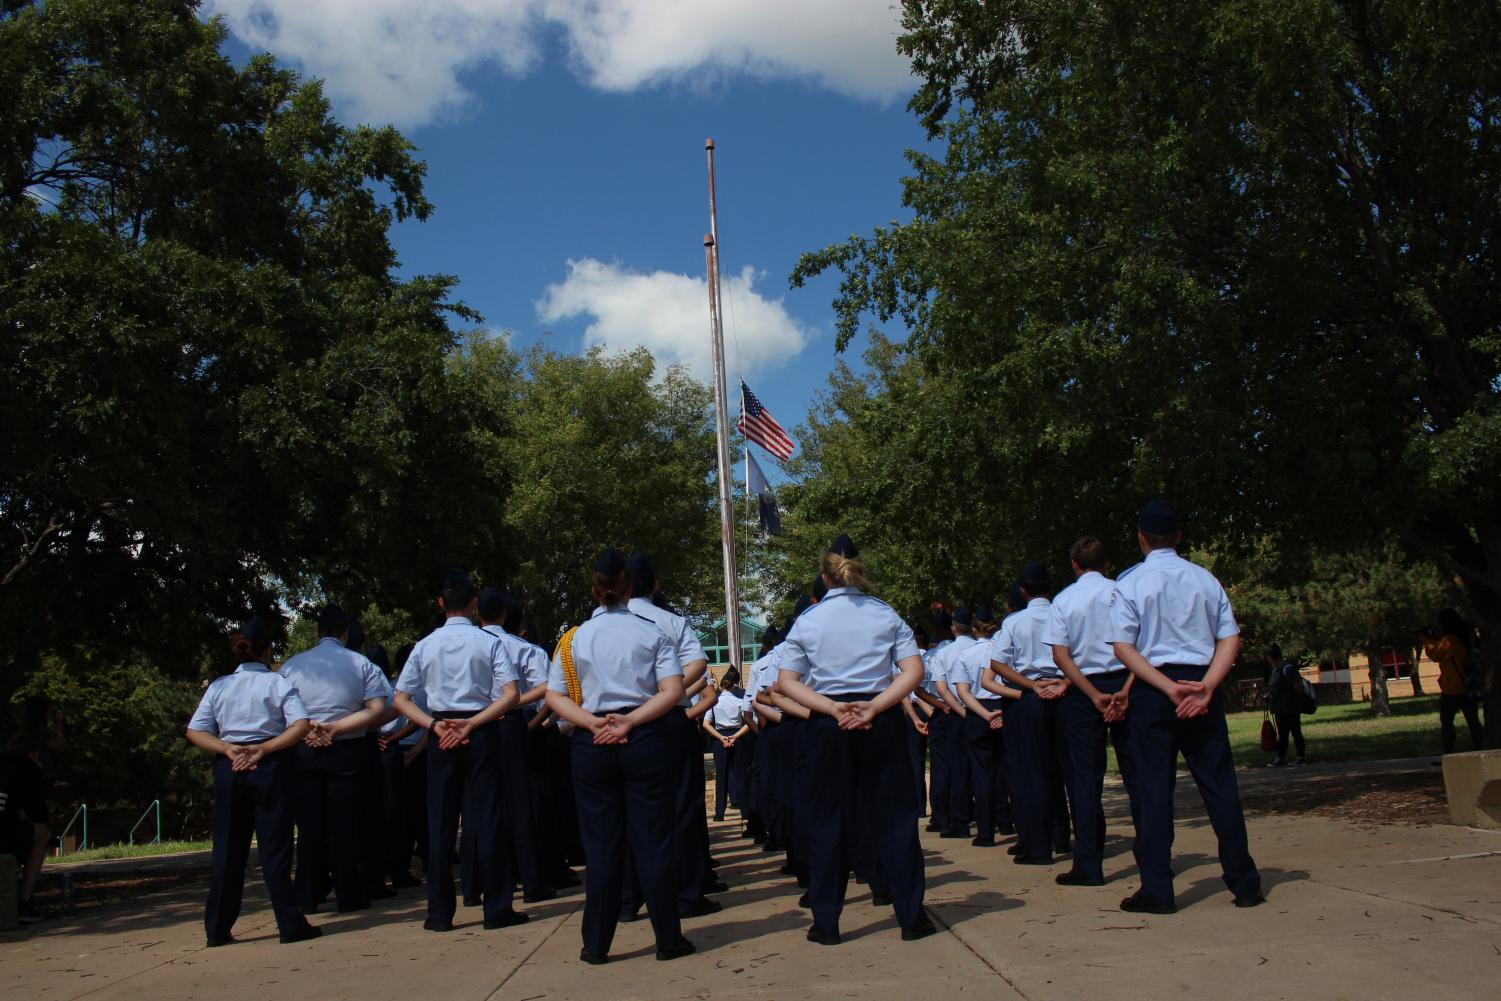 AFJROTC students stand in formation while giving a moment of silence.